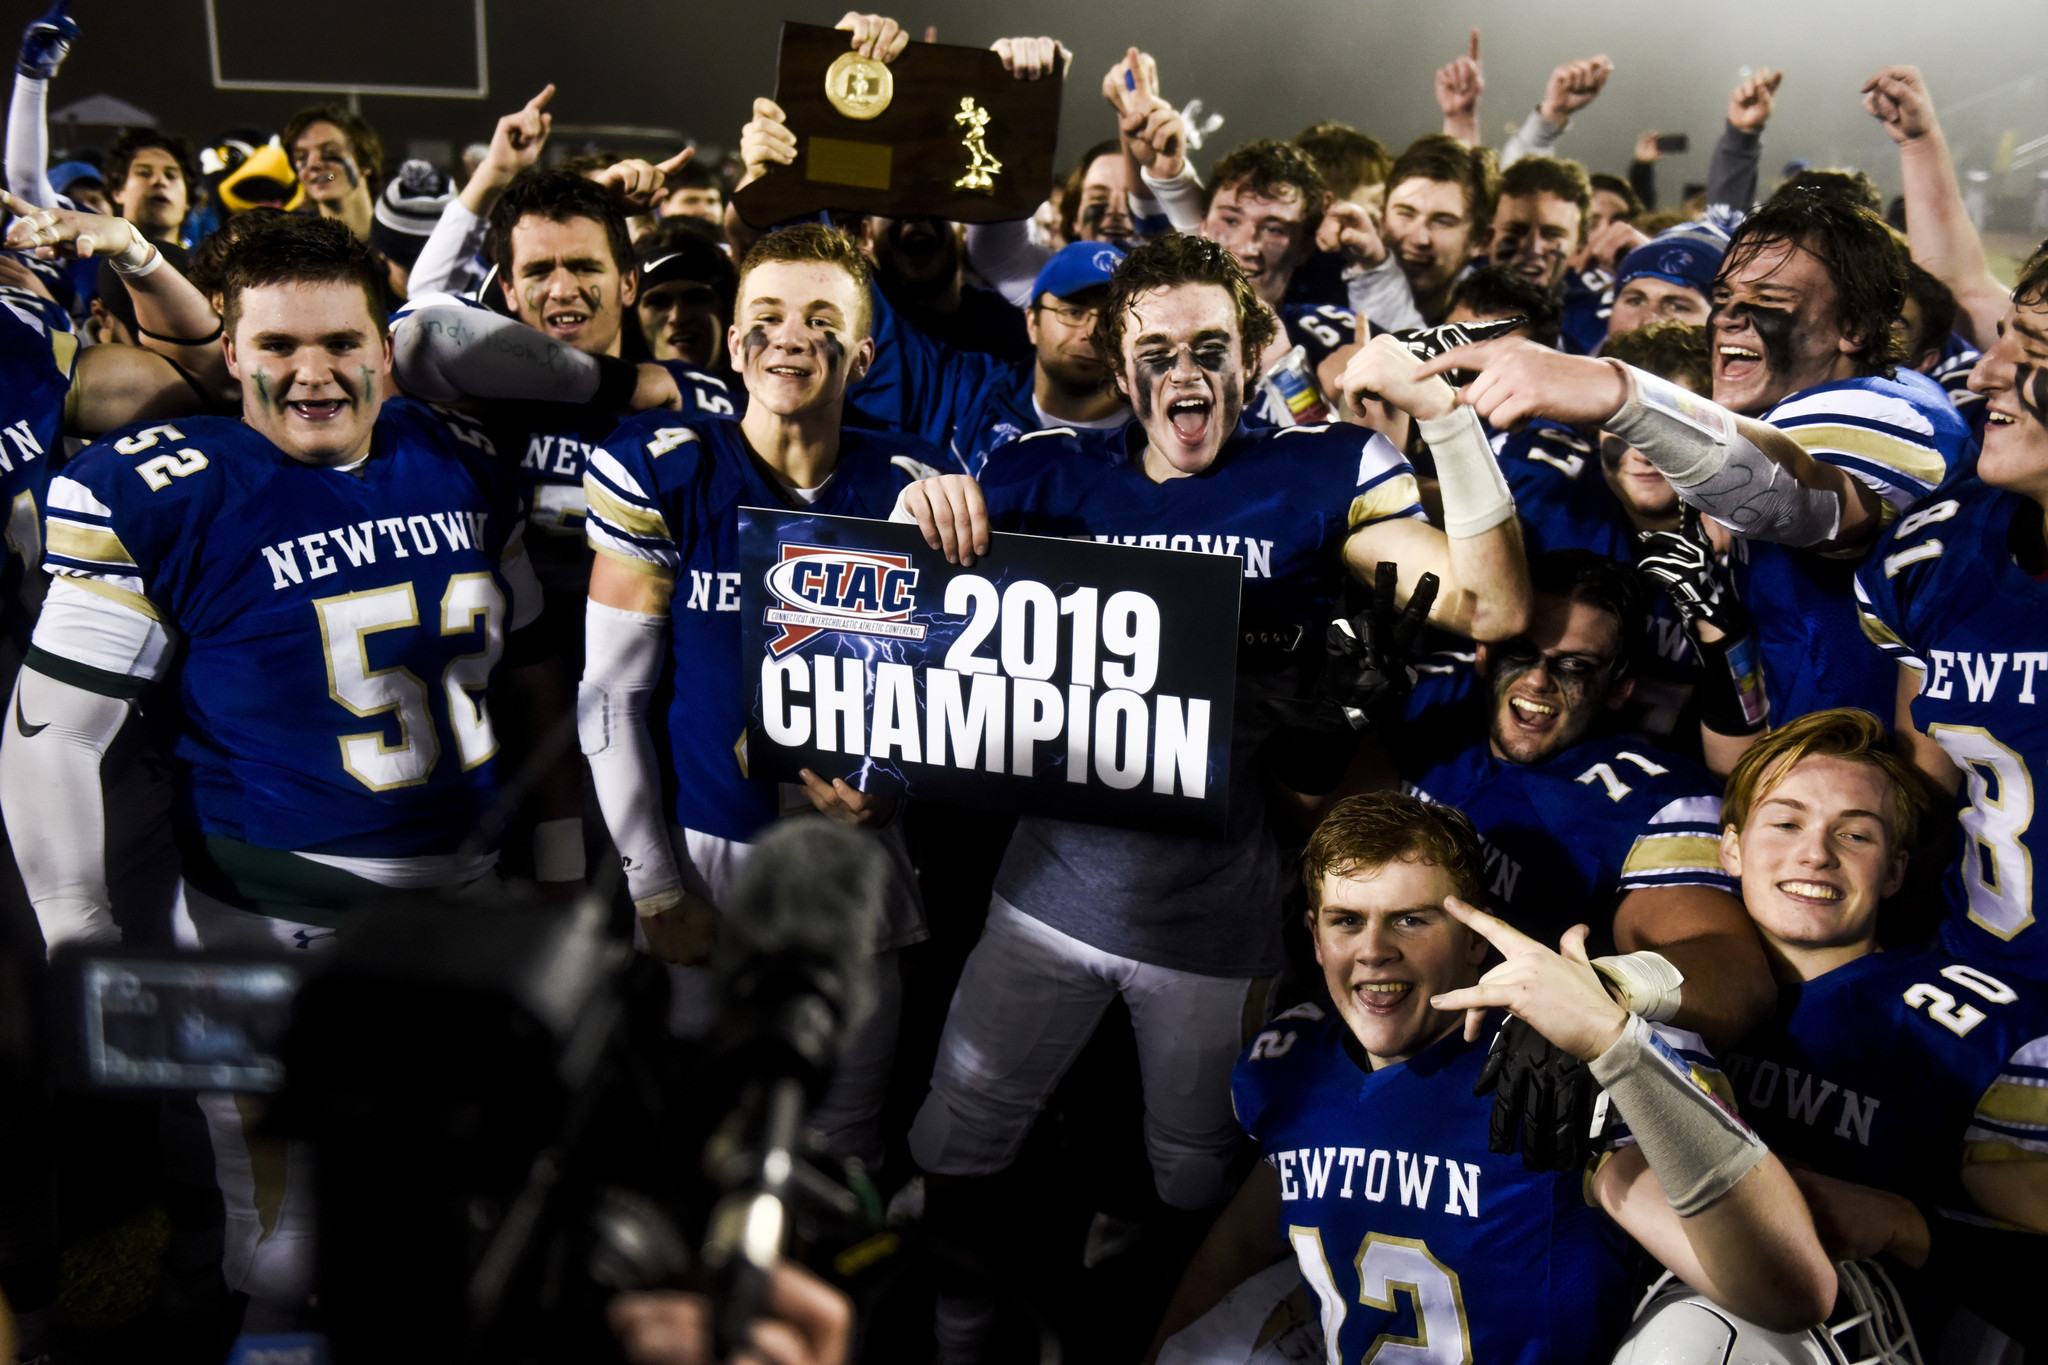 Survivors of 2012 Sandy Hook massacre lead Newtown High School to state football title